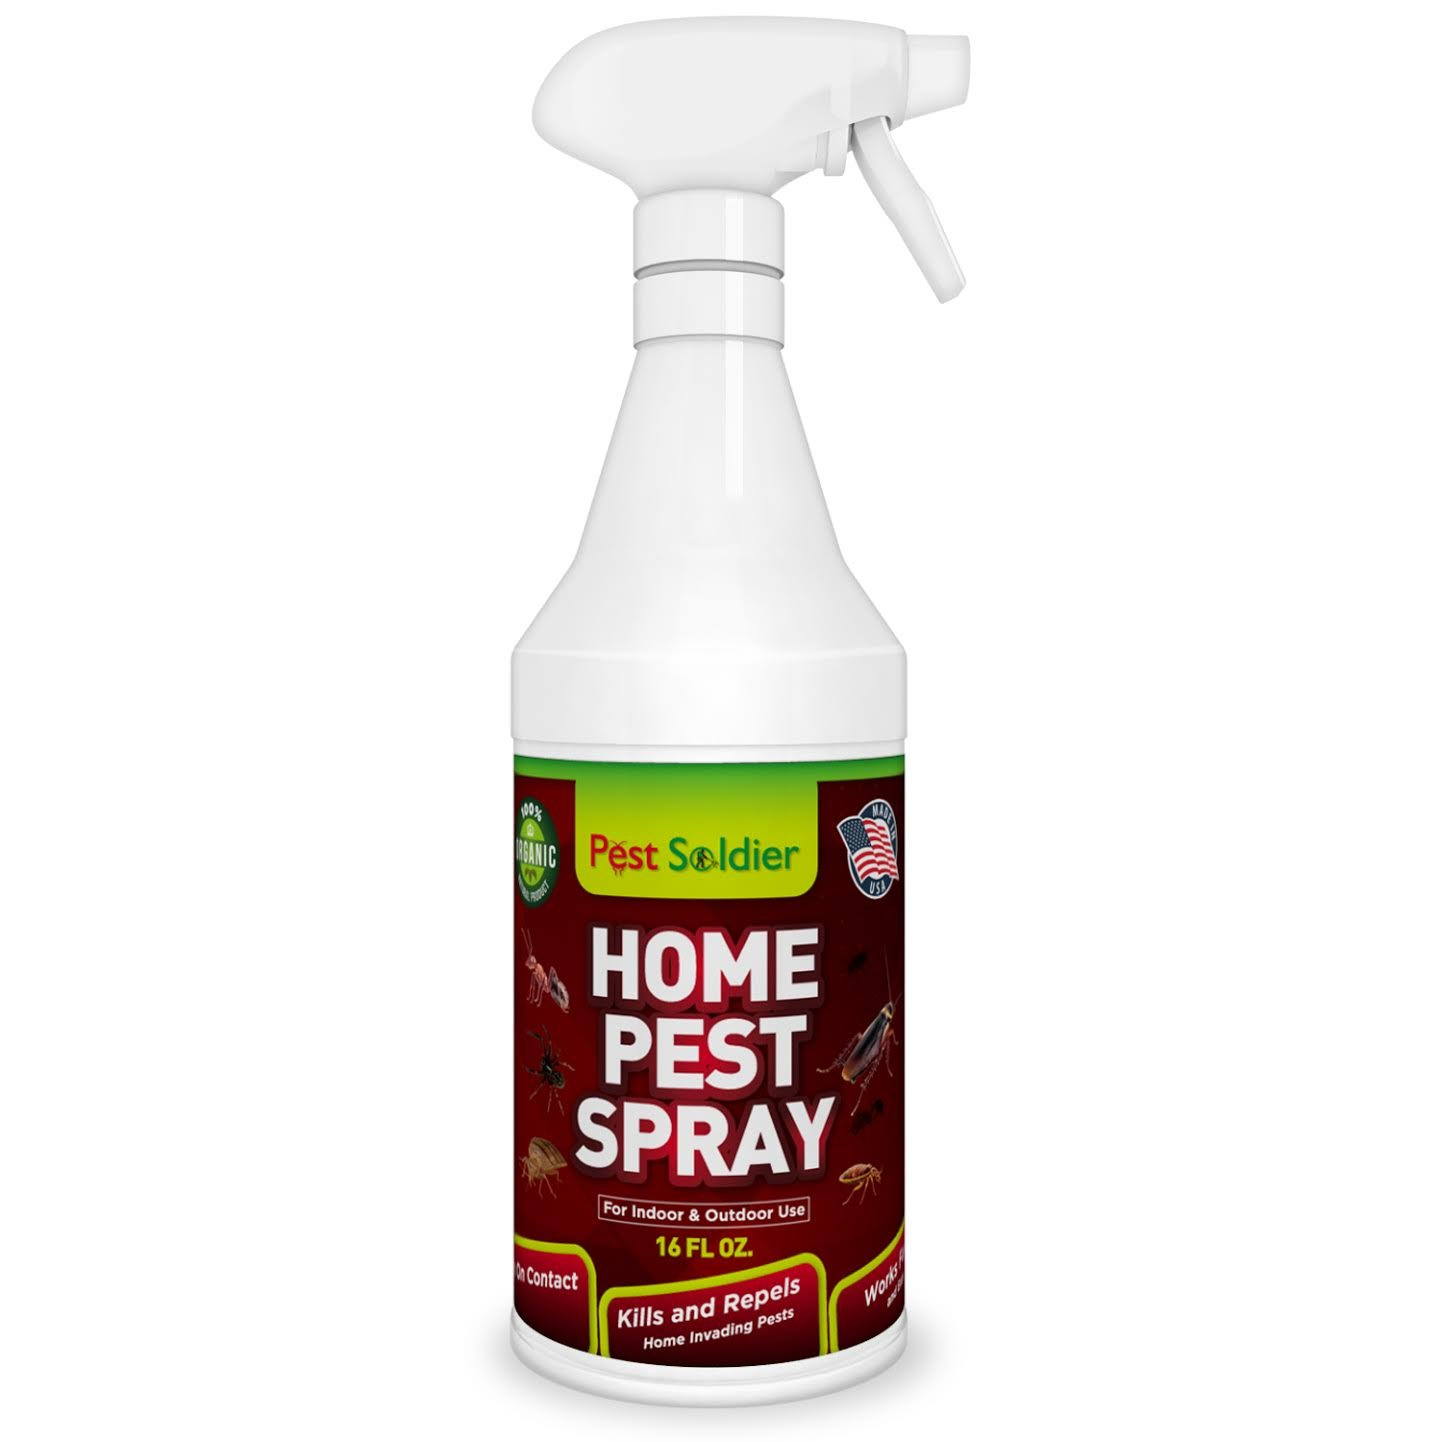 Pest Soldier Organic Home Pest Control Spray - Kills & Repels, Ants, Roaches, Spiders, and Other Pests Guaranteed - Natural Insect Killer - Child & Pet Safe - Indoor/Outdoor Spray - 16oz